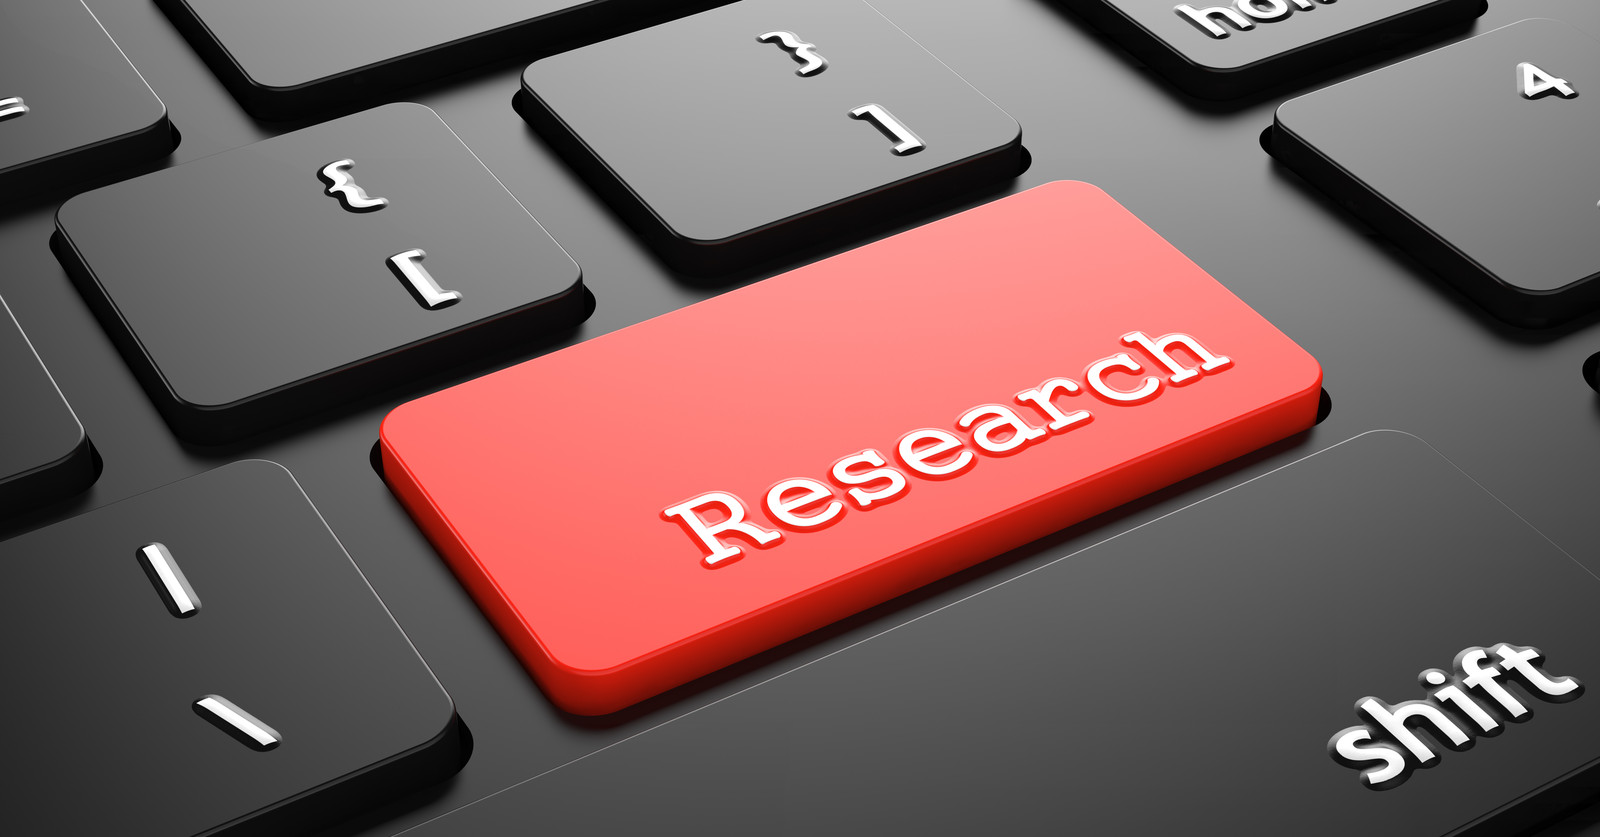 PROMOTE AND PROFIT FROM YOUR RESEARCH WORKS